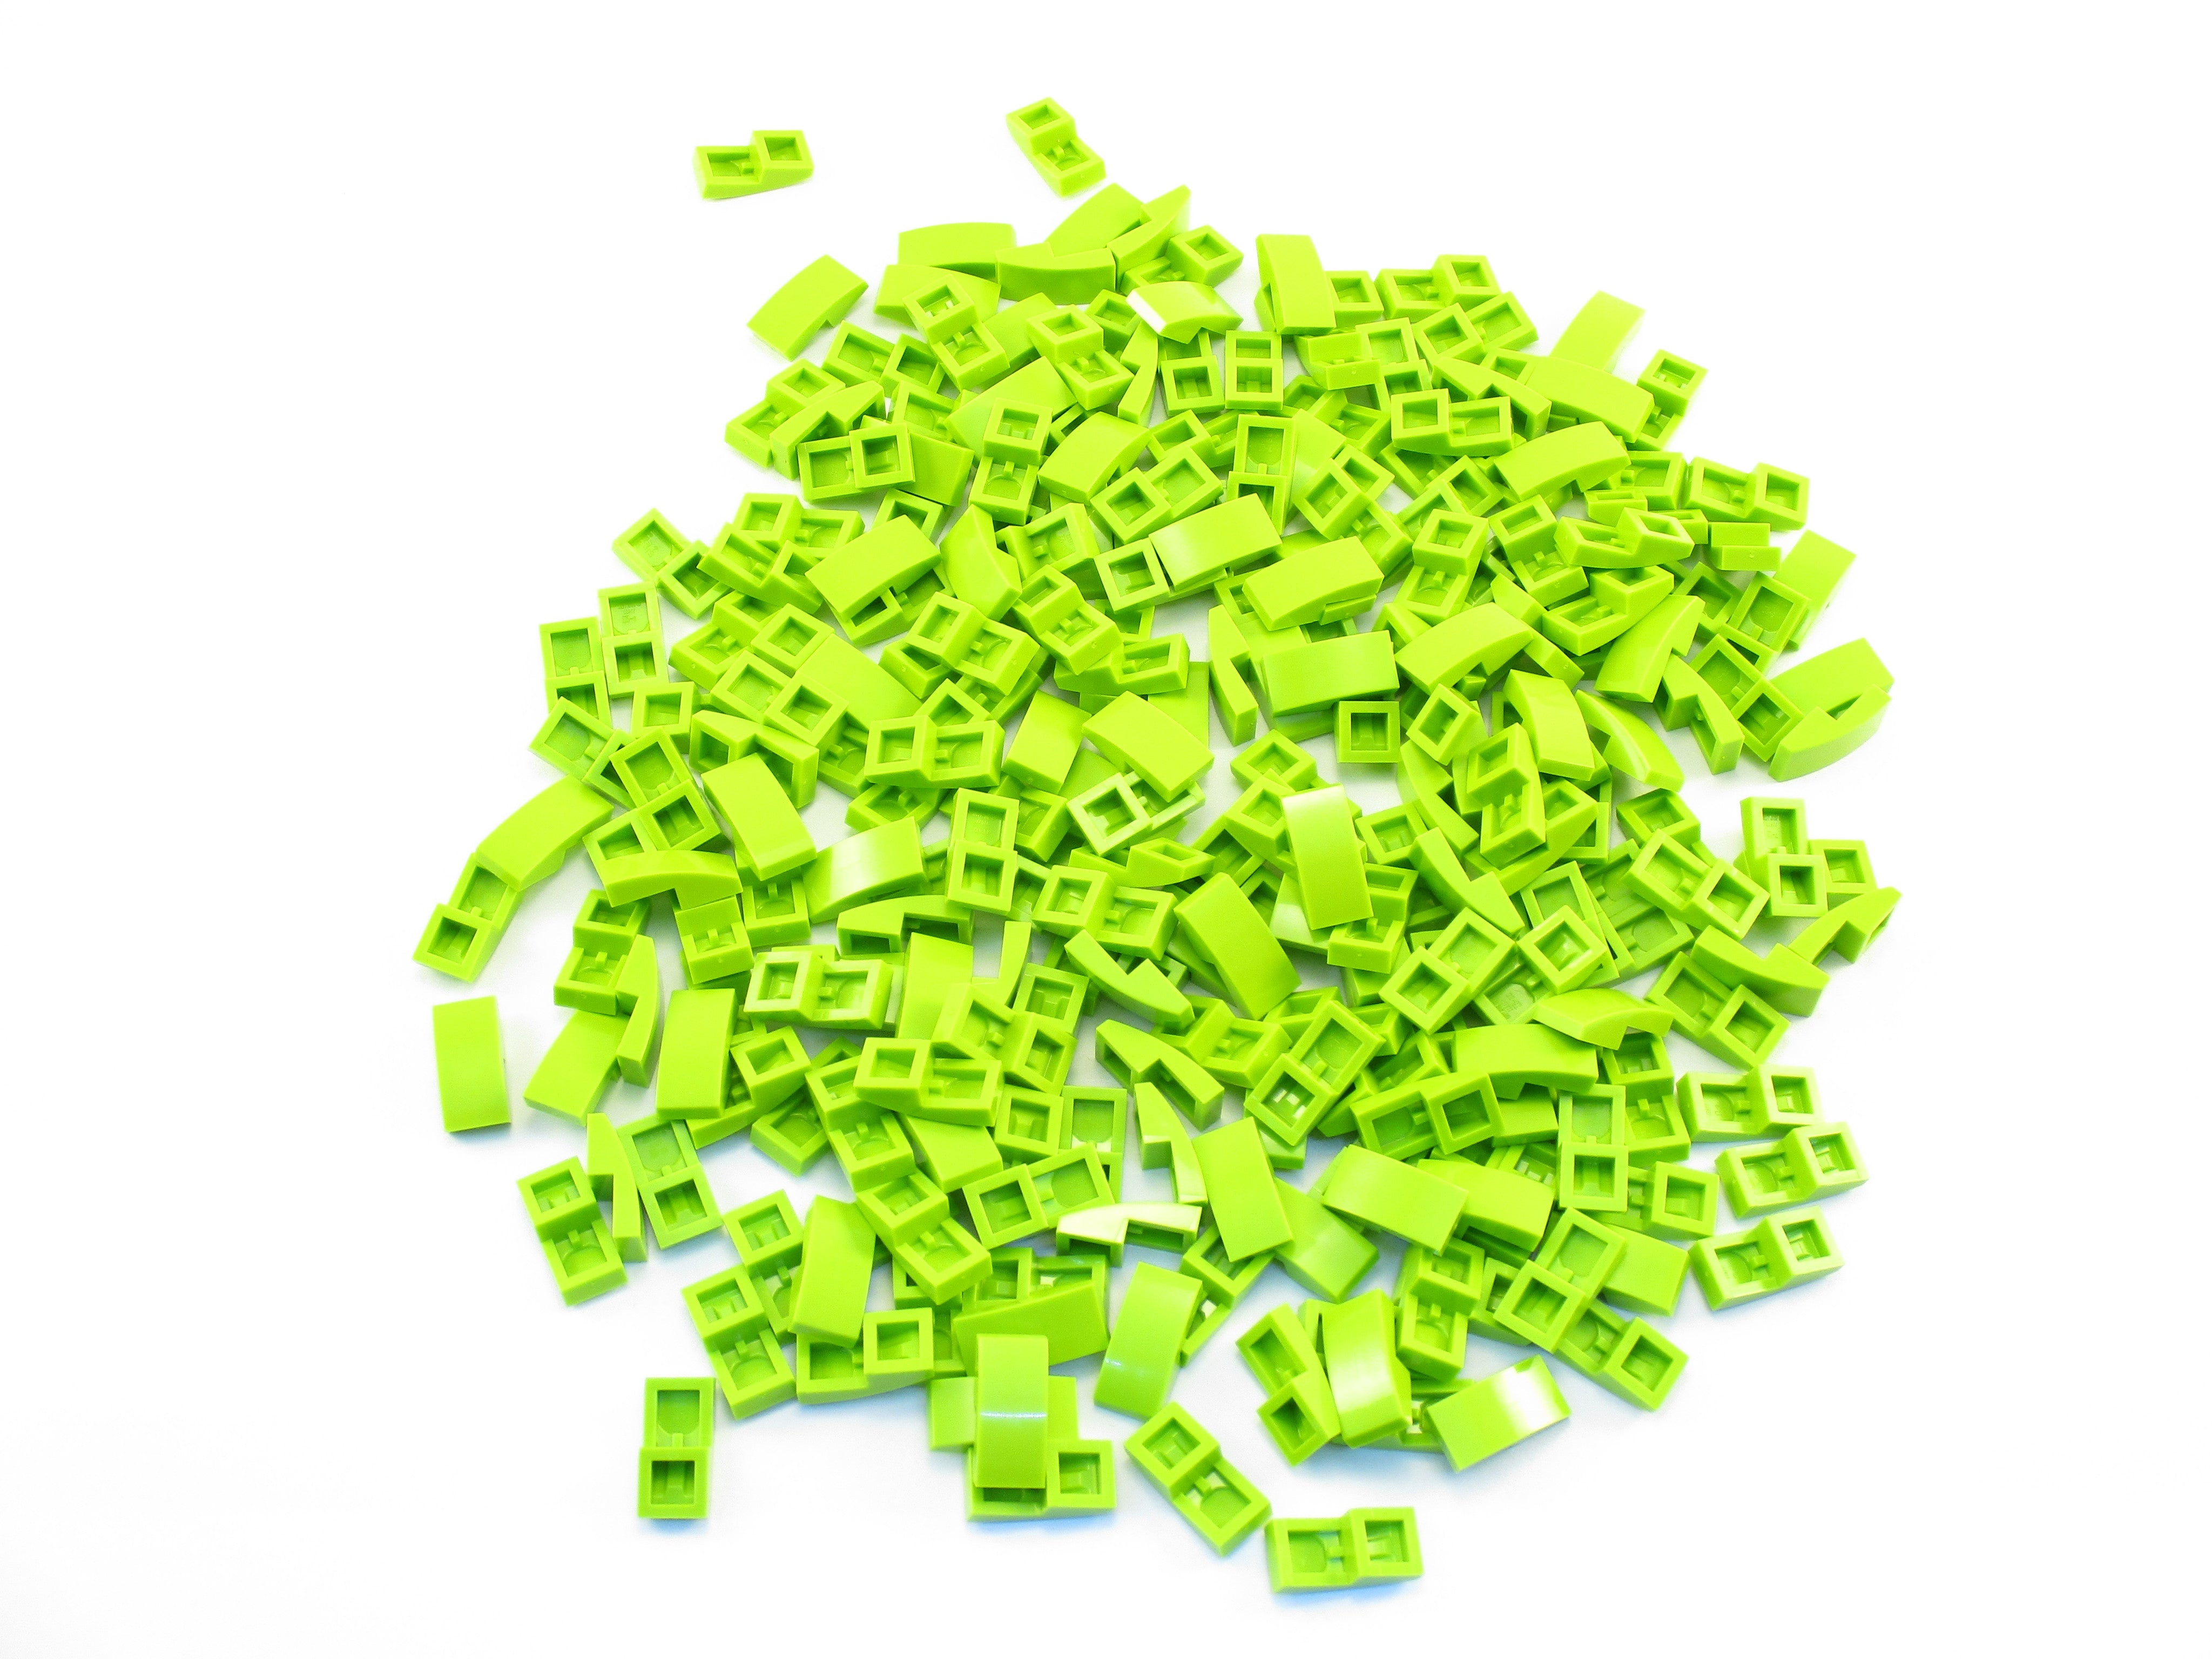 LEGO Lime Slope Curved 2x1 No Studs Lot of 100 Parts Pieces 11477